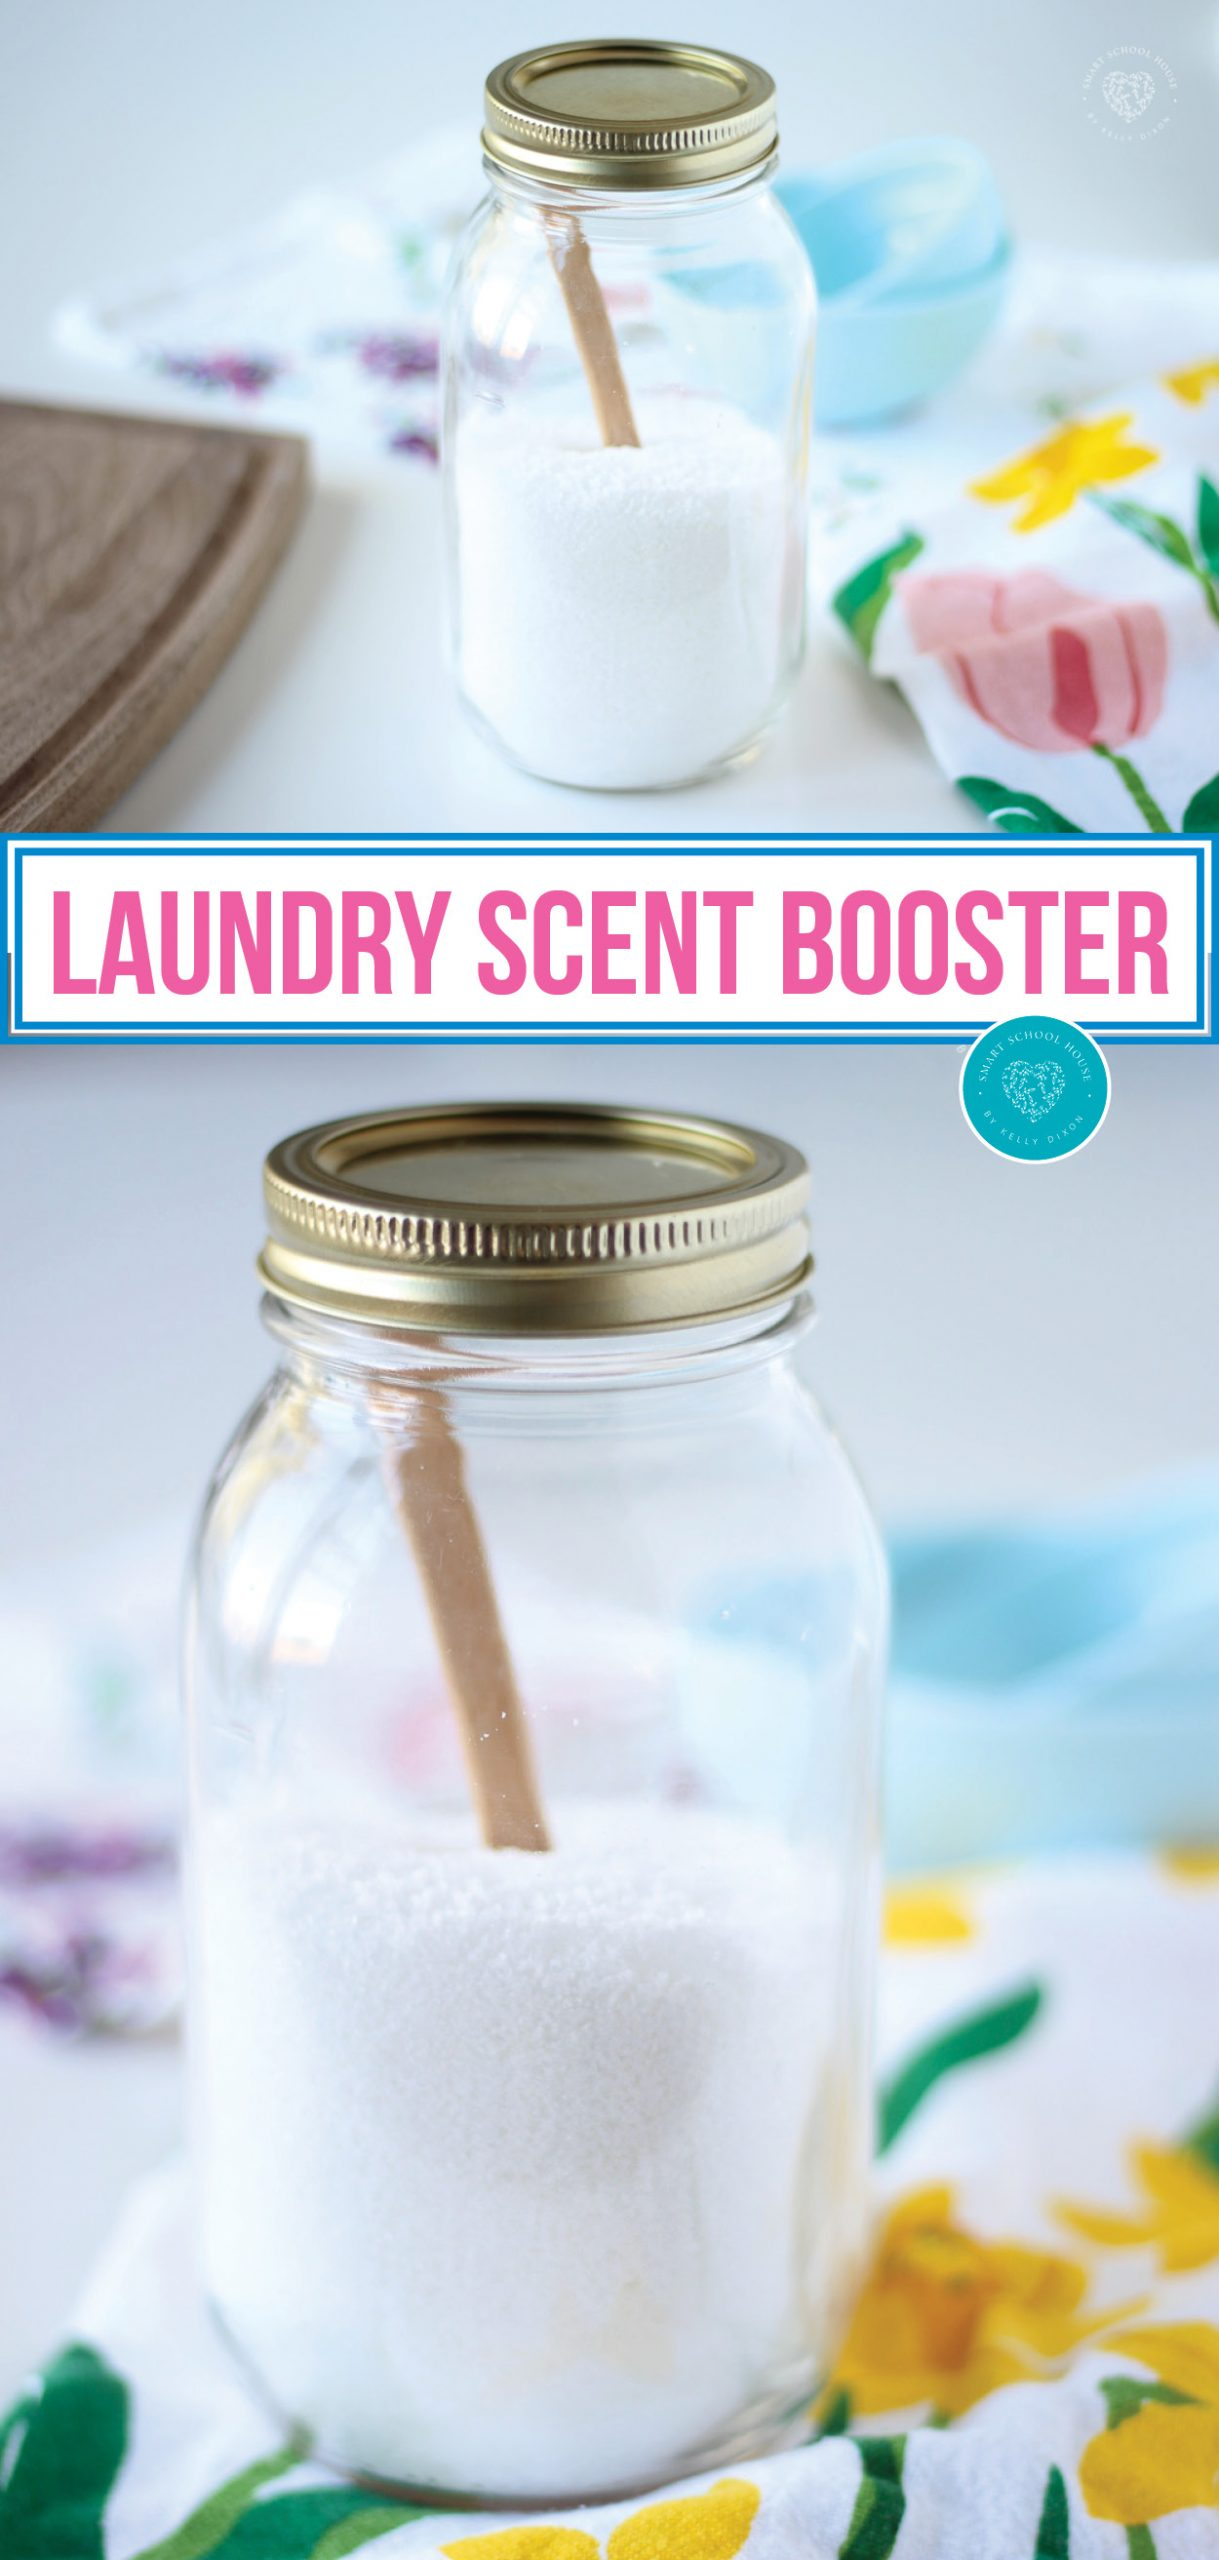 3 Ing Diy Laundry Scent Booster